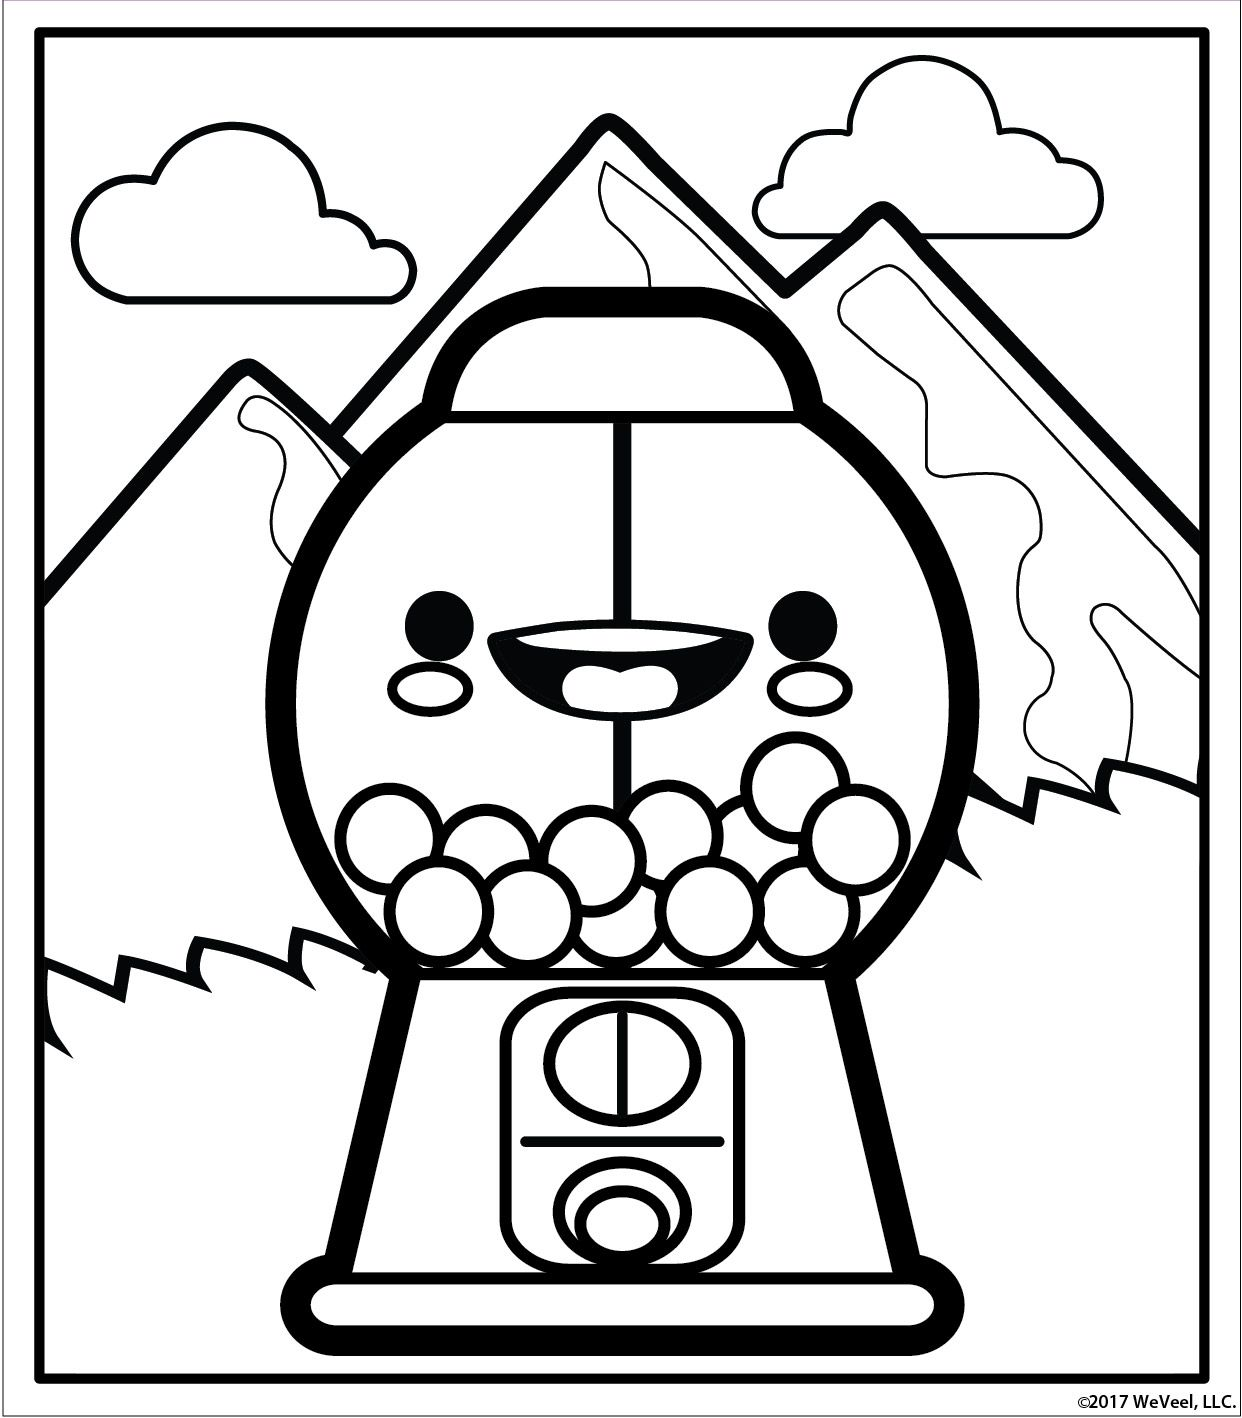 Free Printable Coloring Pages At Scentos Com Cute Girl Coloring Pages To Download And Print Free Kids Coloring Pages Emoji Coloring Pages Candy Coloring Pages